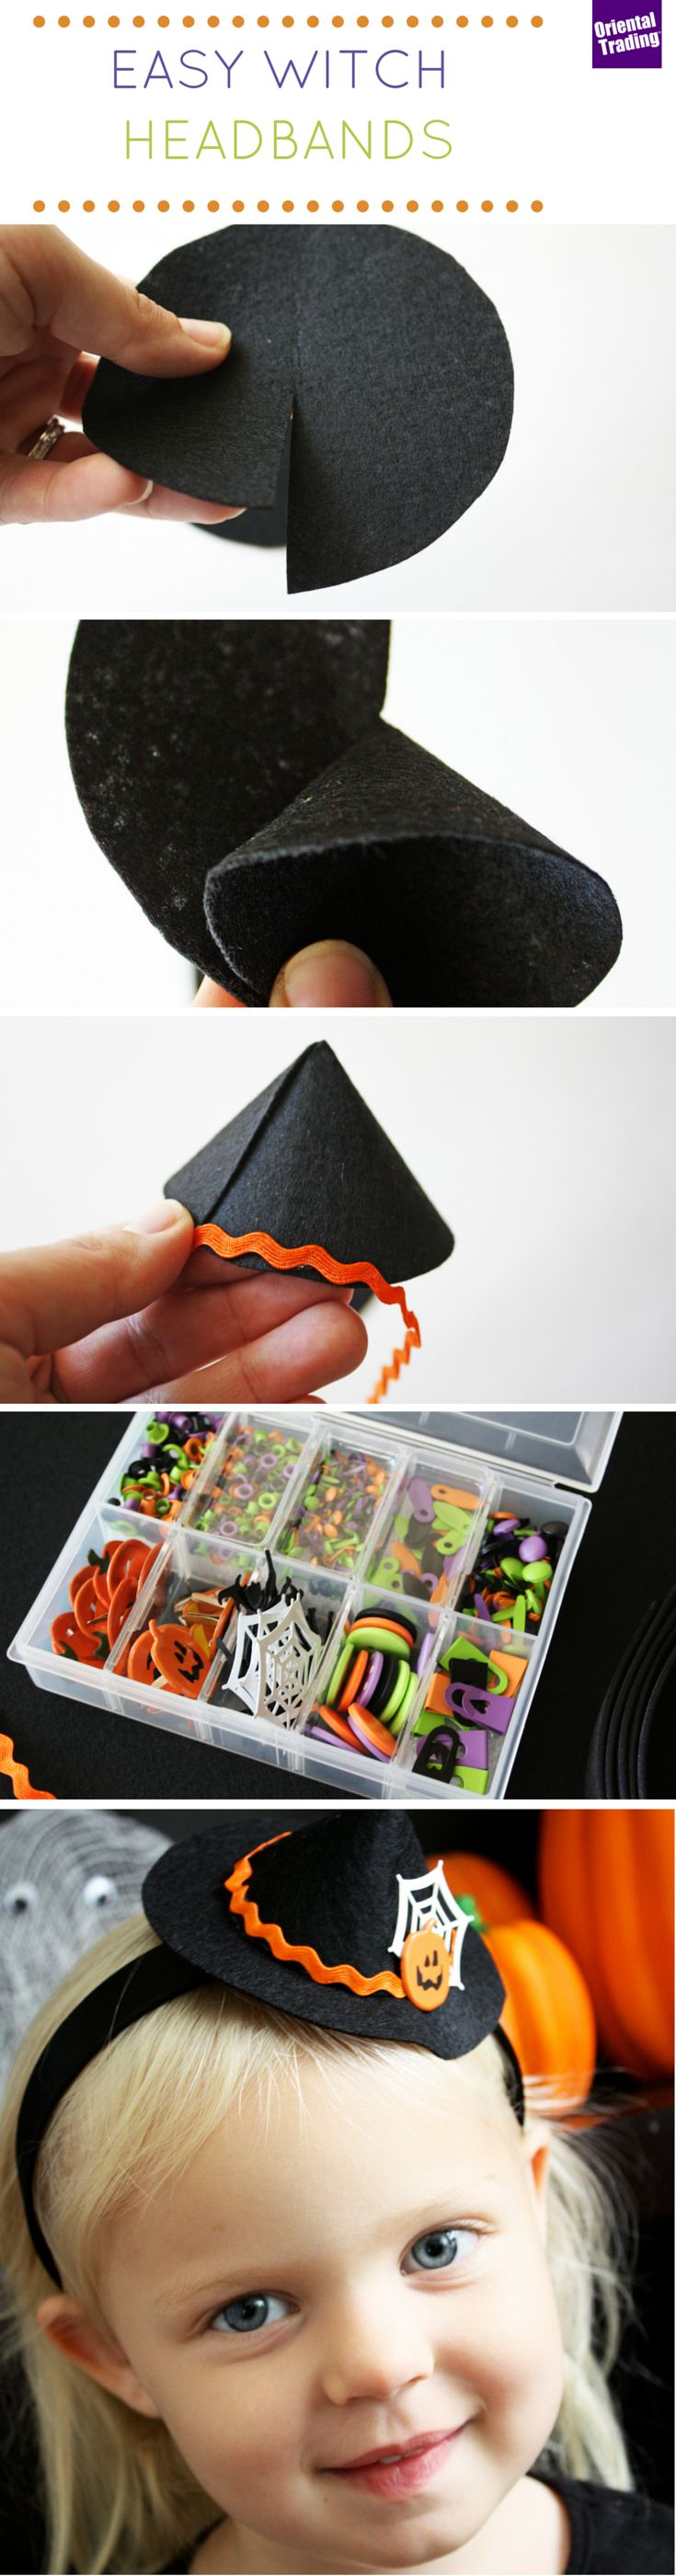 My daughters love making their own headbands! For Halloween we decided to make cute witch hat headbands. They are absolutely adorable and can be worn with any witch costume. All it takes is a little felt, some hot glue and cute Halloween embellishments.